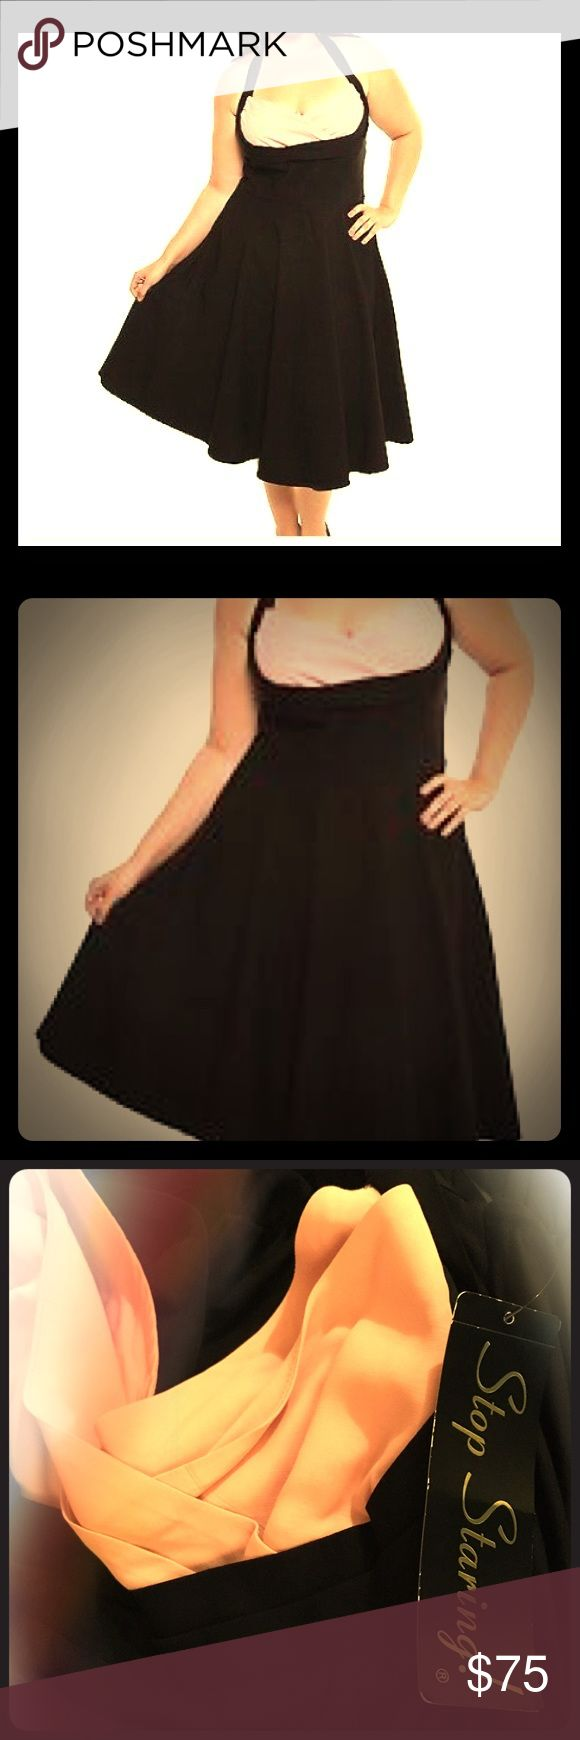 Stop Staring Dress 👗 Pinup dress NWT Brand New!! Never been used! Stop Staring! Black Bombshell Pink Bust Rockabilly Halter Swing Dress. Vintage style. Size 16 stretchy material. True to Size! Stop Staring Dresses